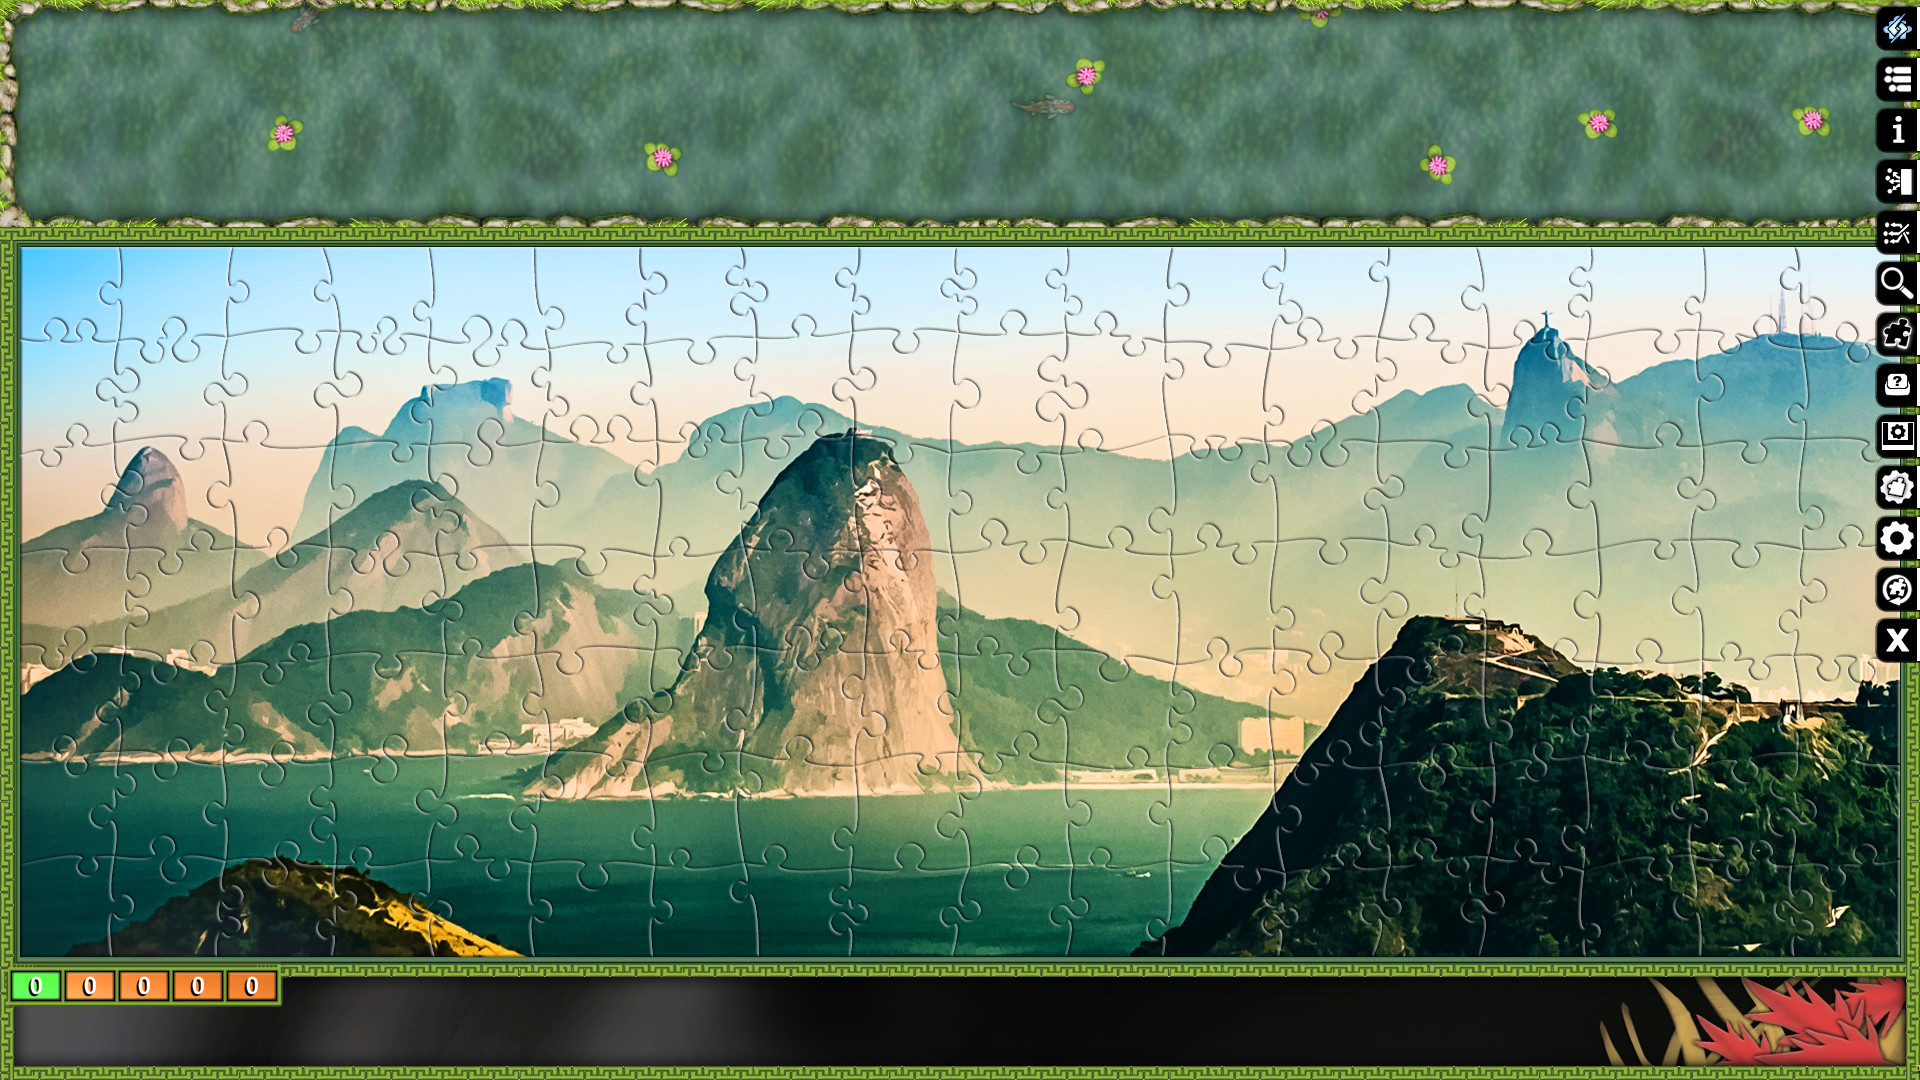 Jigsaw Puzzle Pack - Pixel Puzzles Ultimate: Rio screenshot